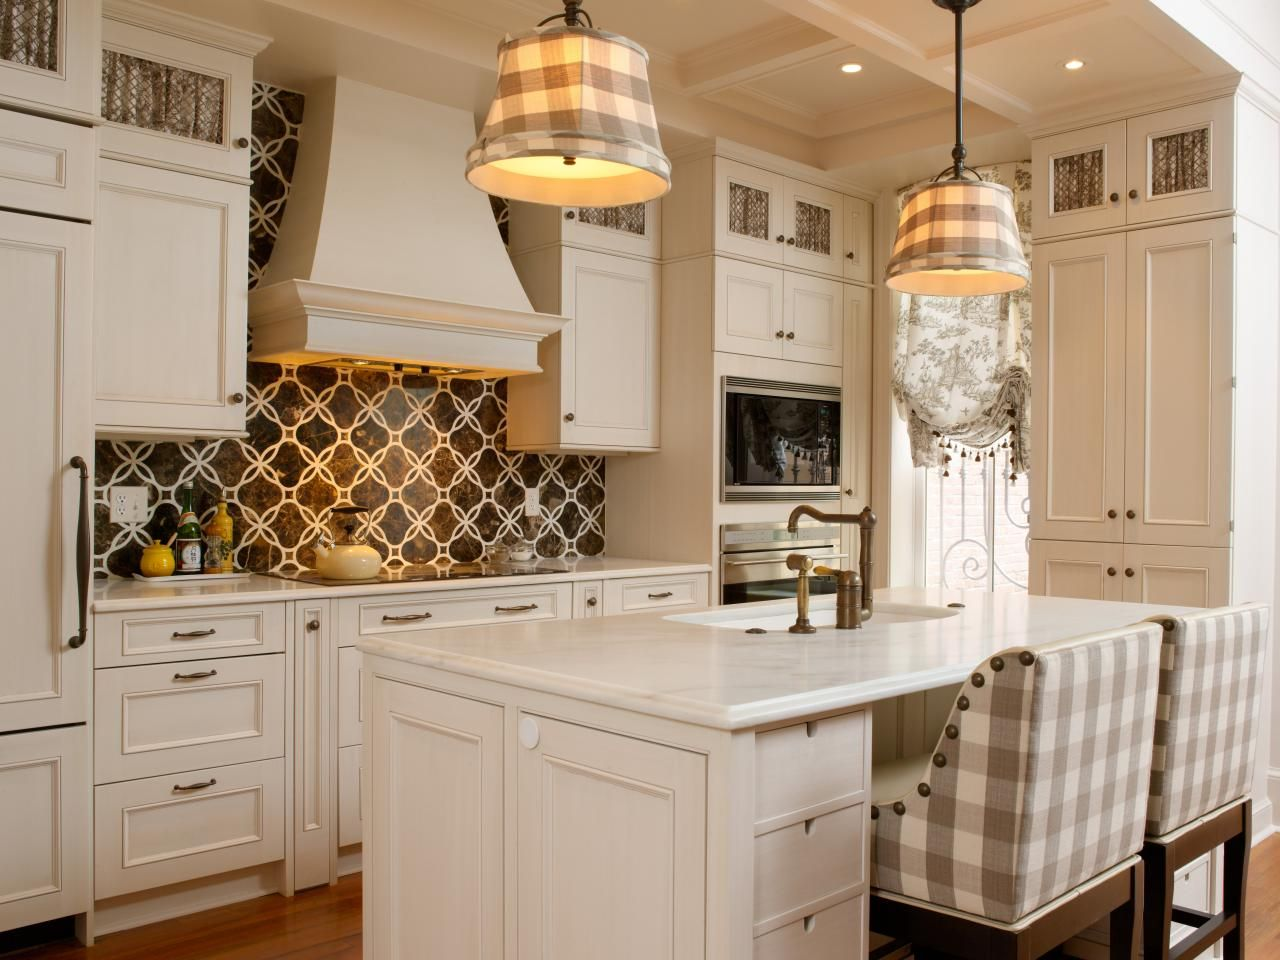 A variety of patterns from plaids on the lights and chairs to a